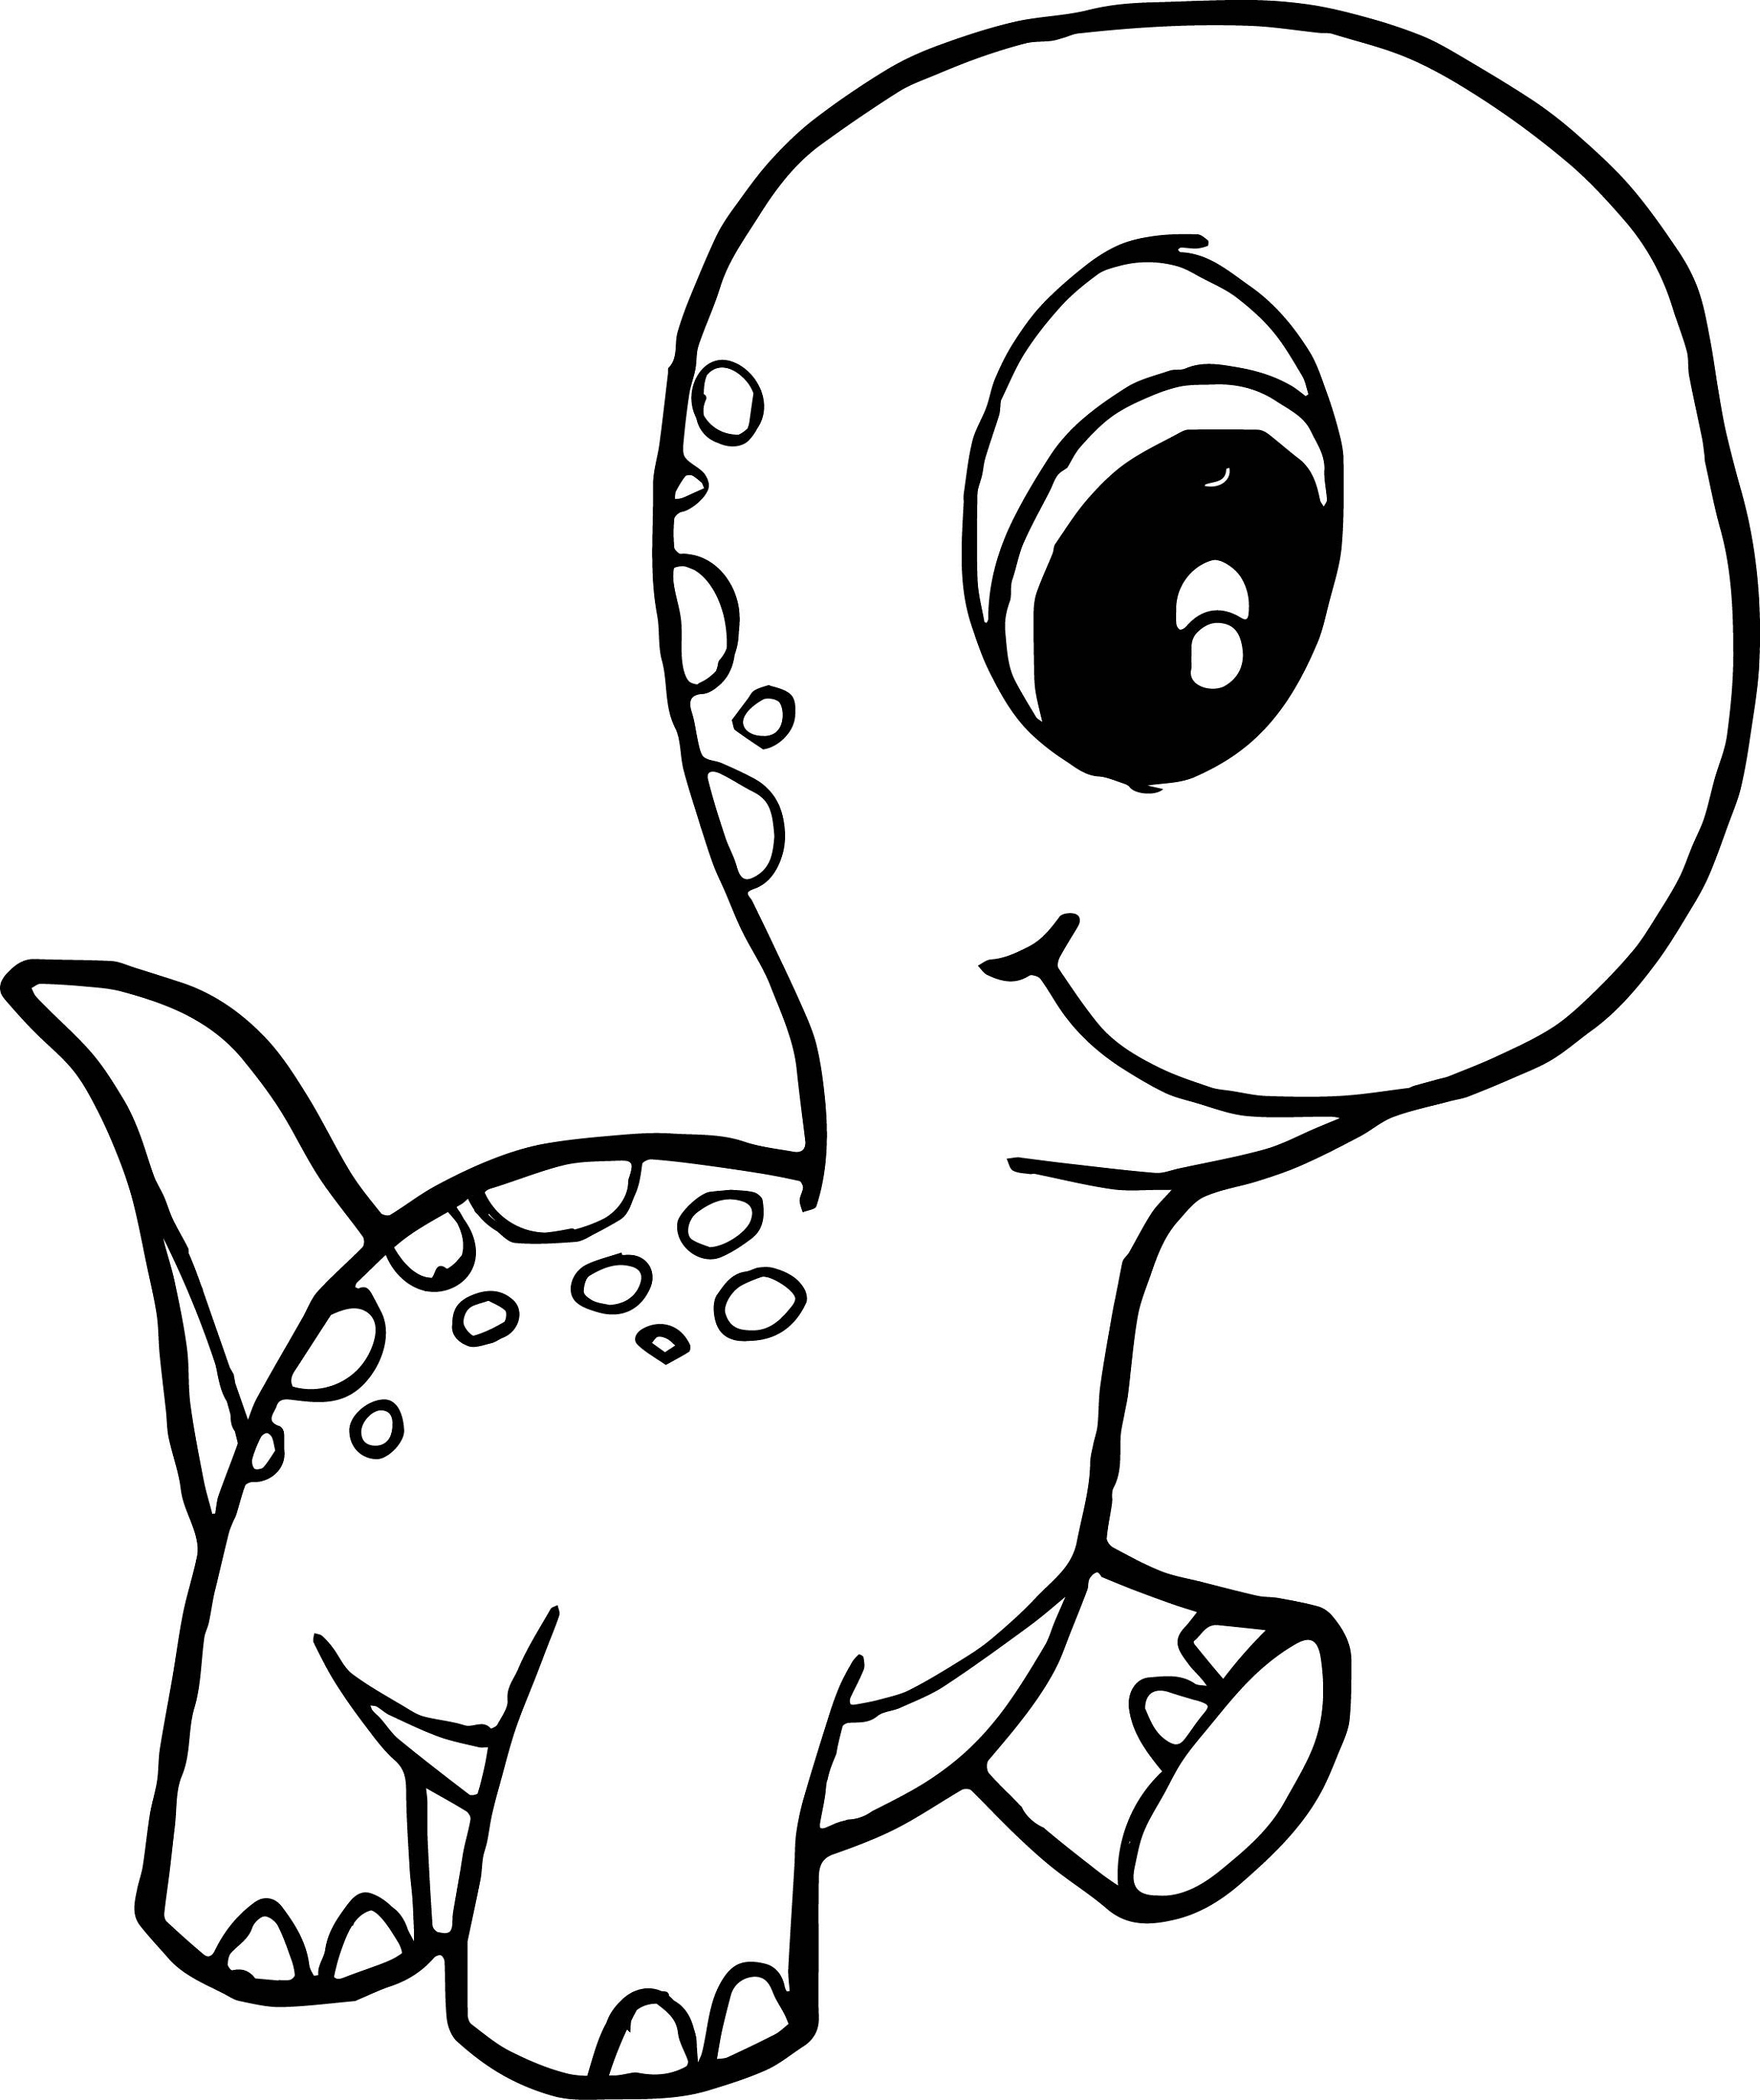 simple dinosaur coloring pages baby dinosaur coloring pages for preschoolers activity coloring simple dinosaur pages